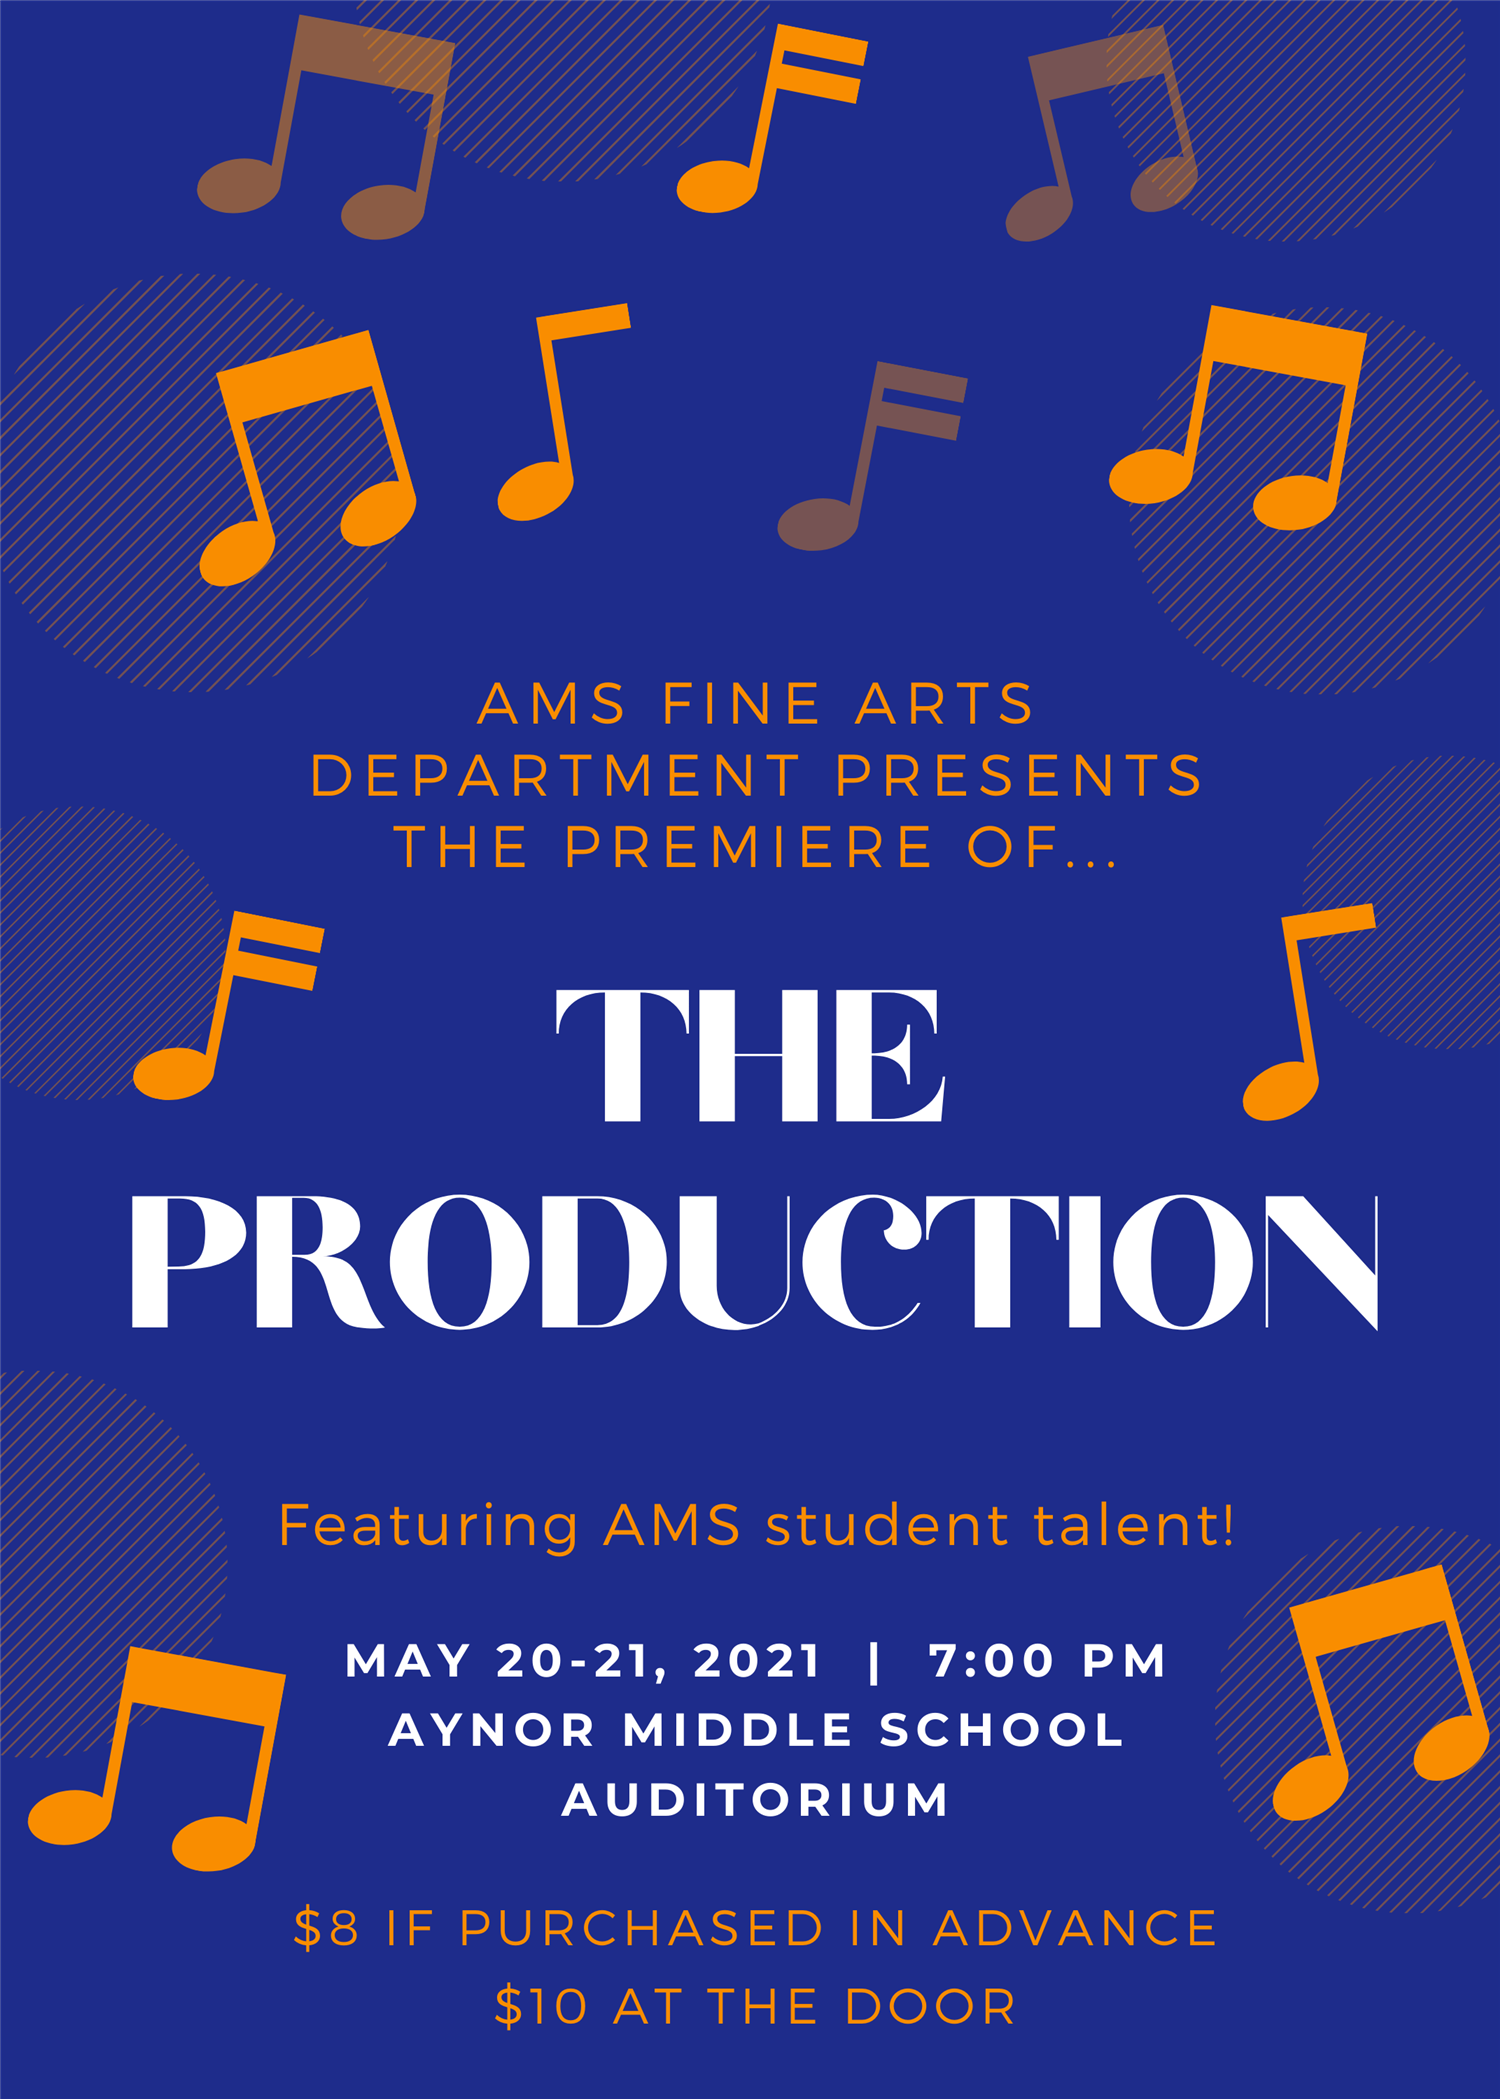 The Production!  on may. 20, 19:00@Aynor Middle School Auditorium - Buy tickets and Get information on Aynor Middle School Fine Arts